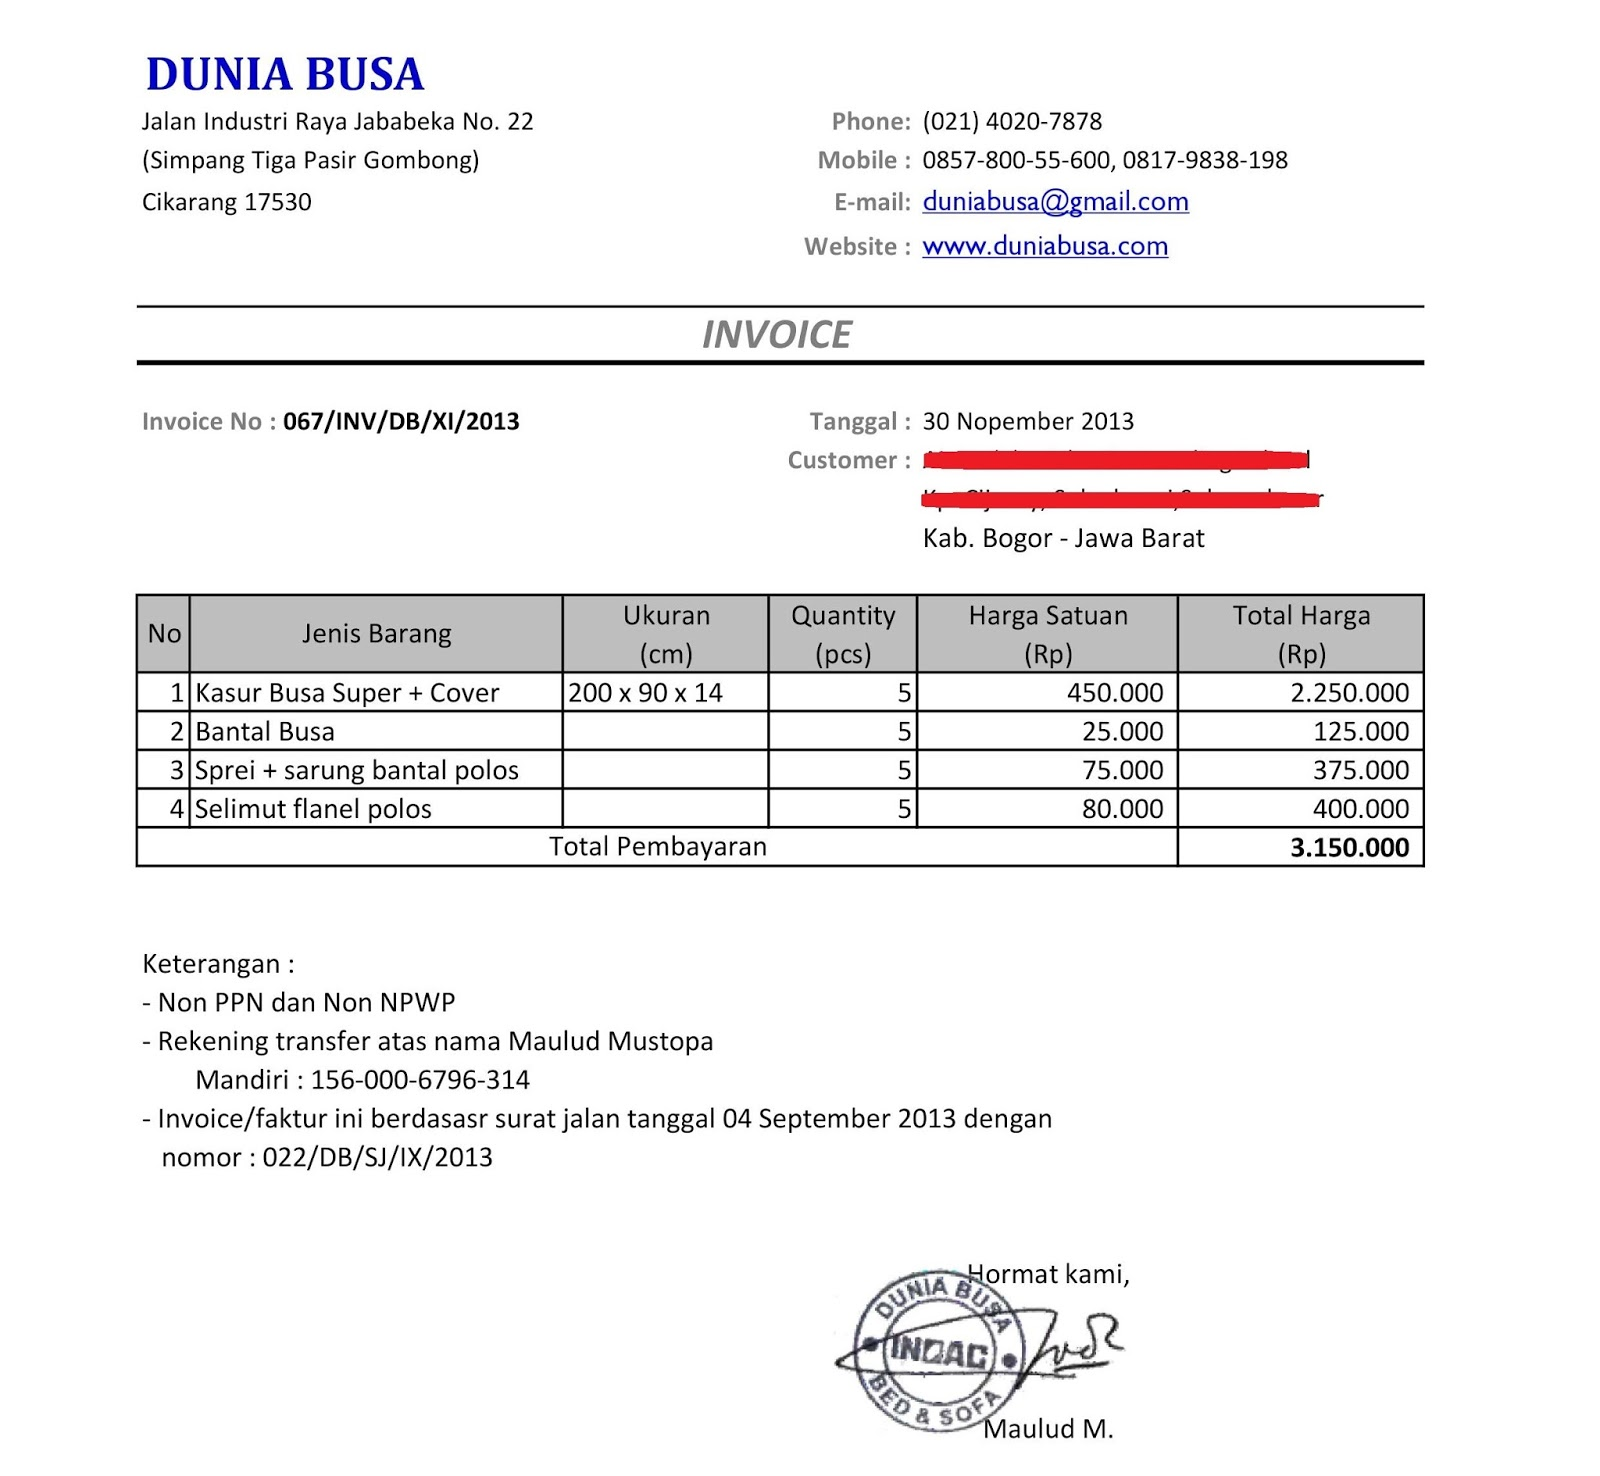 Usdgus  Prepossessing Free Invoice Online  Create Invoice Online  Invoice Template  With Magnificent Contoh Format Invoice Atau Surat Tagihan  Brankas Arsip  Free Invoice Online With Divine Invoice To Me Also Aynax Invoice In Addition Invoice Home And Invoices Definition As Well As Invoice Financing Additionally Microsoft Invoice Template From Sklepco With Usdgus  Magnificent Free Invoice Online  Create Invoice Online  Invoice Template  With Divine Contoh Format Invoice Atau Surat Tagihan  Brankas Arsip  Free Invoice Online And Prepossessing Invoice To Me Also Aynax Invoice In Addition Invoice Home From Sklepco